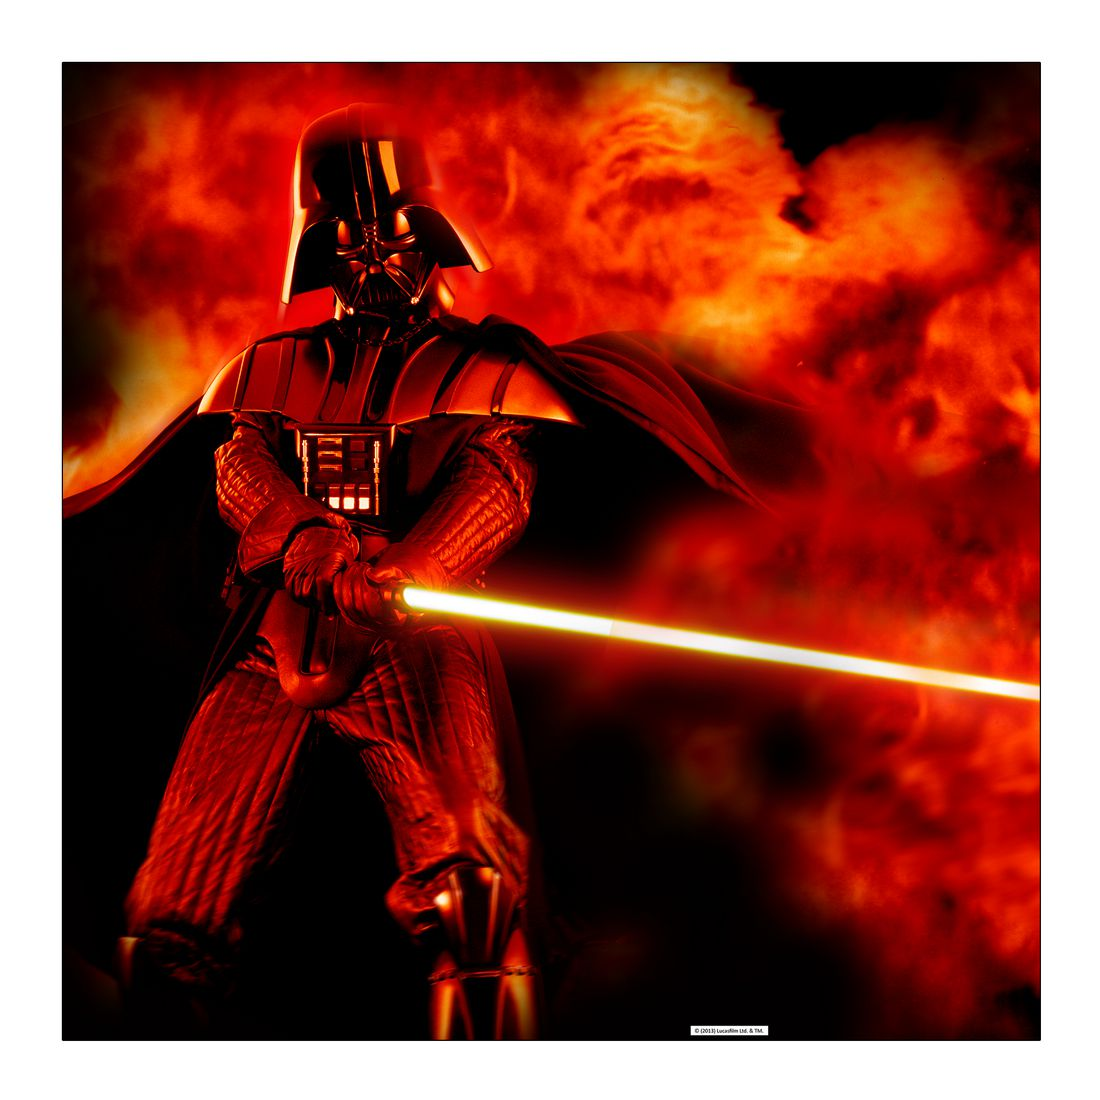 Leinwandbild Darth Vader – Lightsaber Explosion – Abmessung 80×80 cm, Gallery of Innovative Art jetzt bestellen